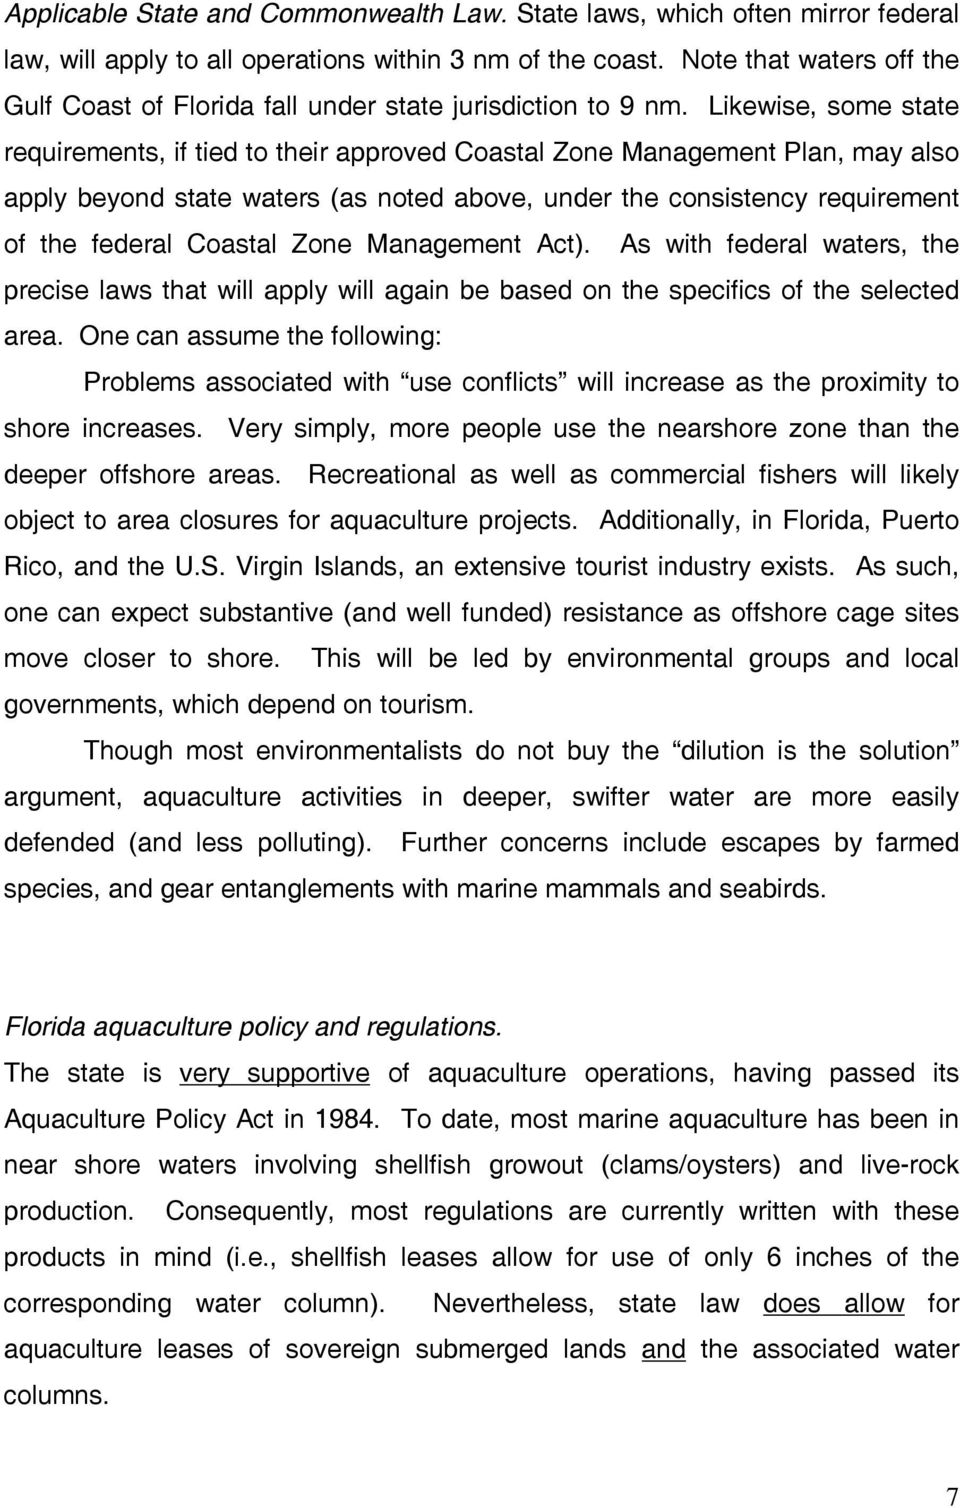 Likewise, some state requirements, if tied to their approved Coastal Zone Management Plan, may also apply beyond state waters (as noted above, under the consistency requirement of the federal Coastal